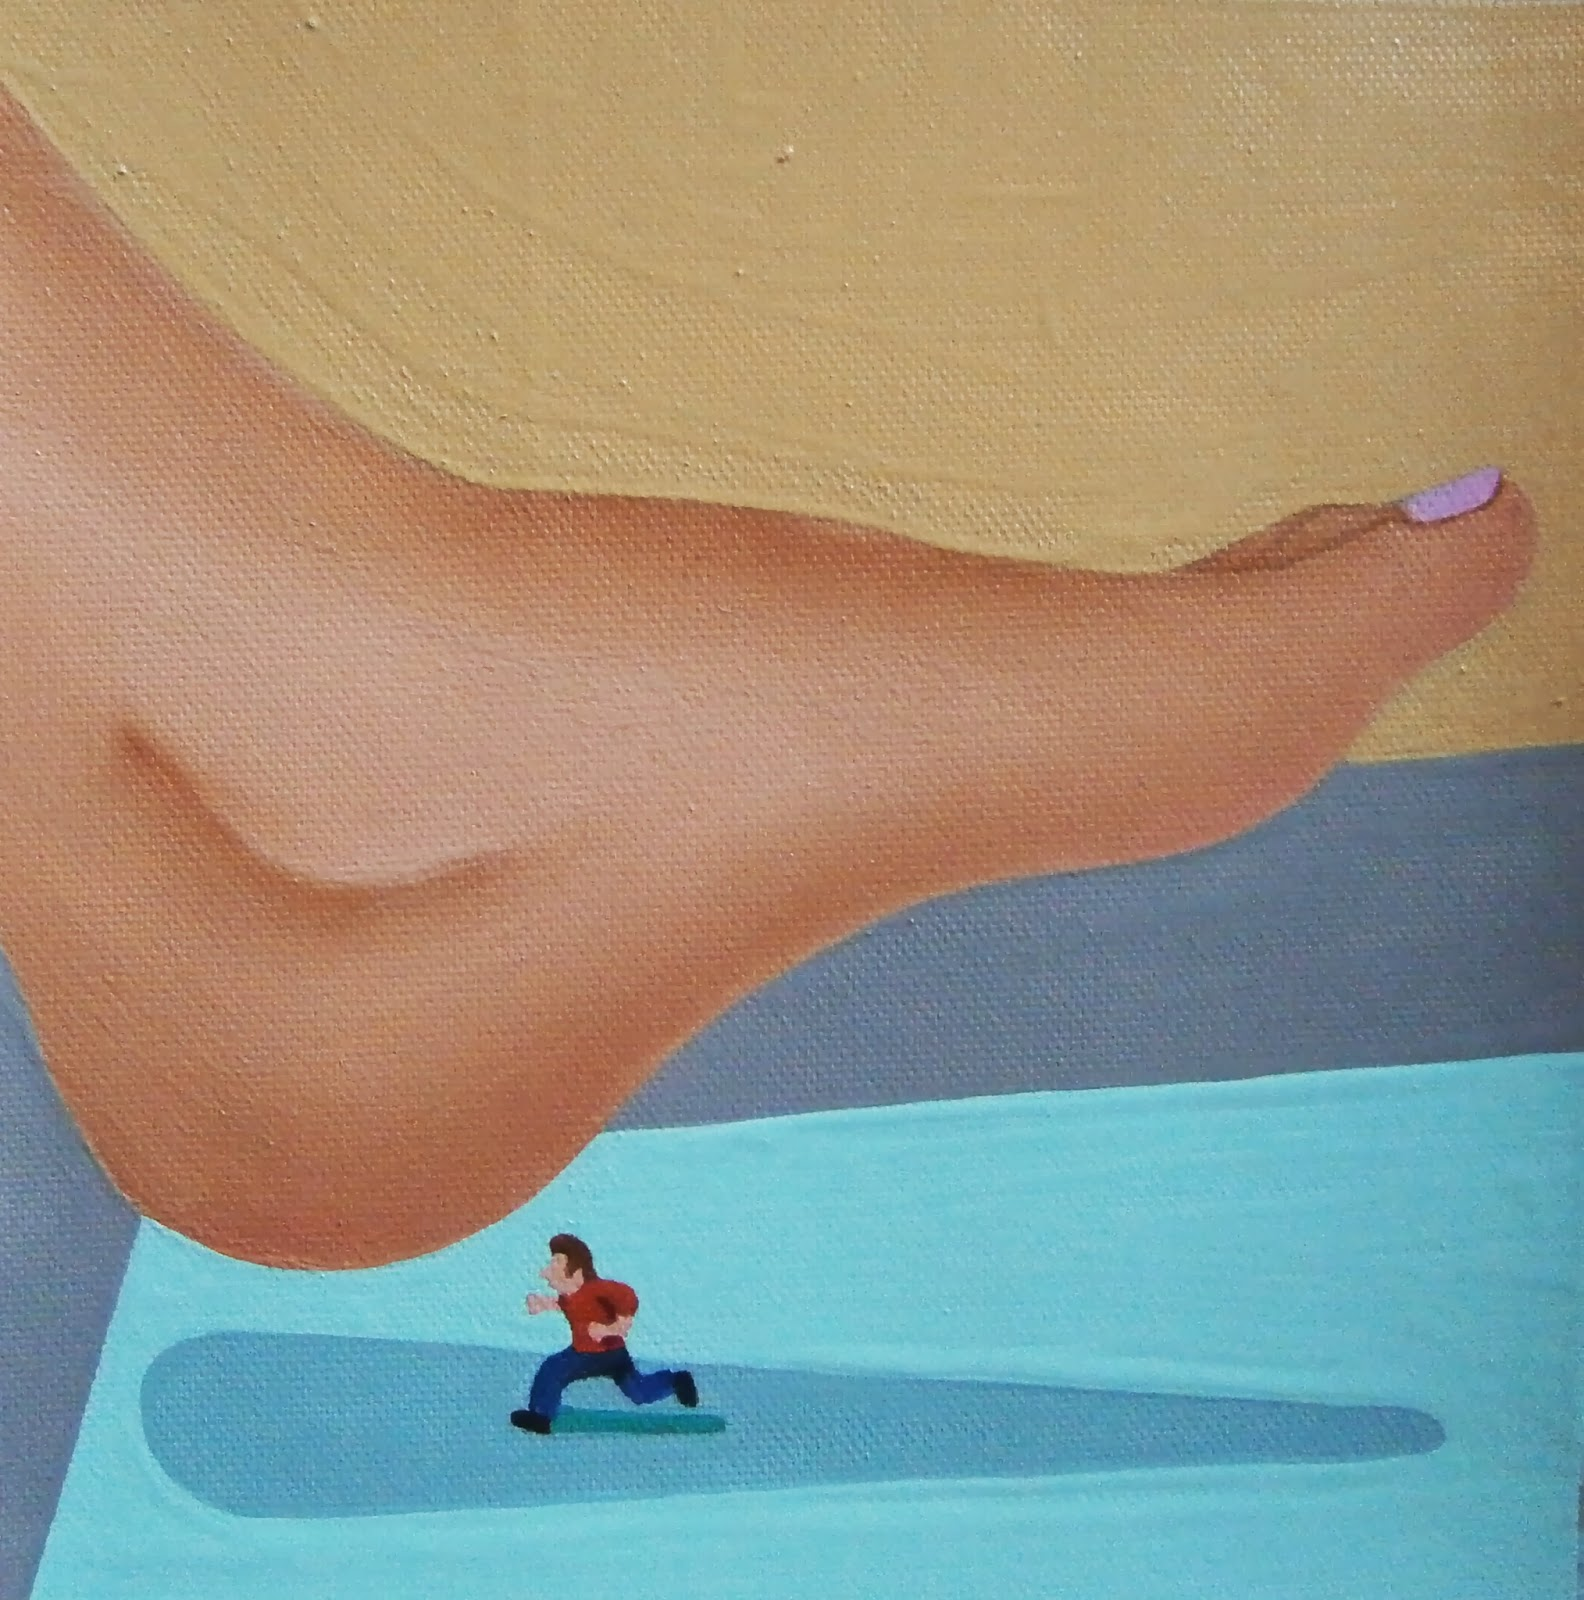 A shrunken man about to be stepped on by a woman's foot